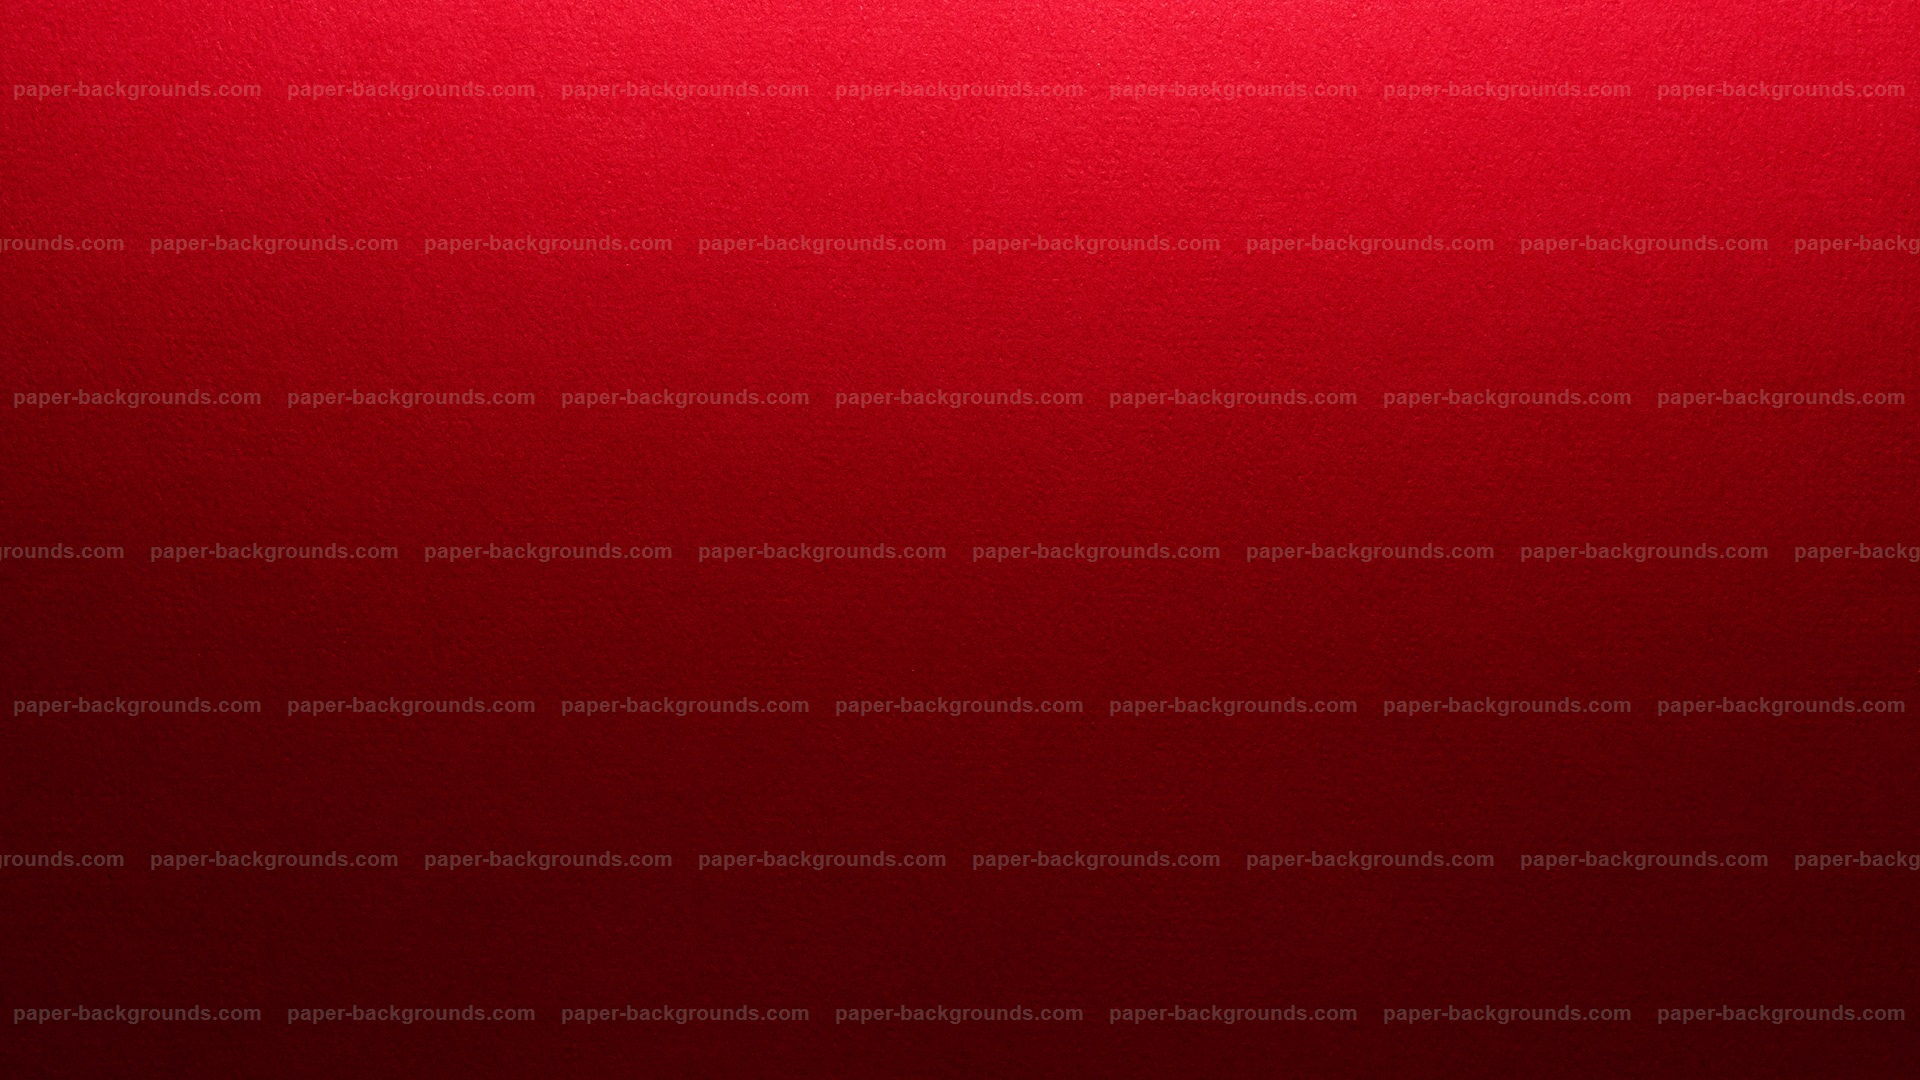 red textured background hd - photo #16